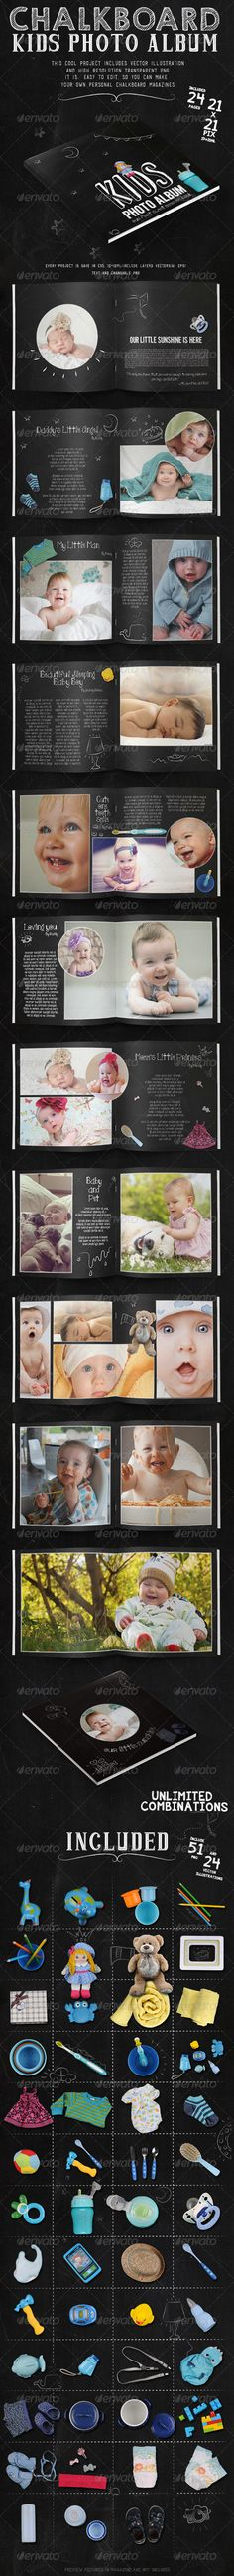 Kids Chalkboard Photo Album - Photo Albums Print Templates